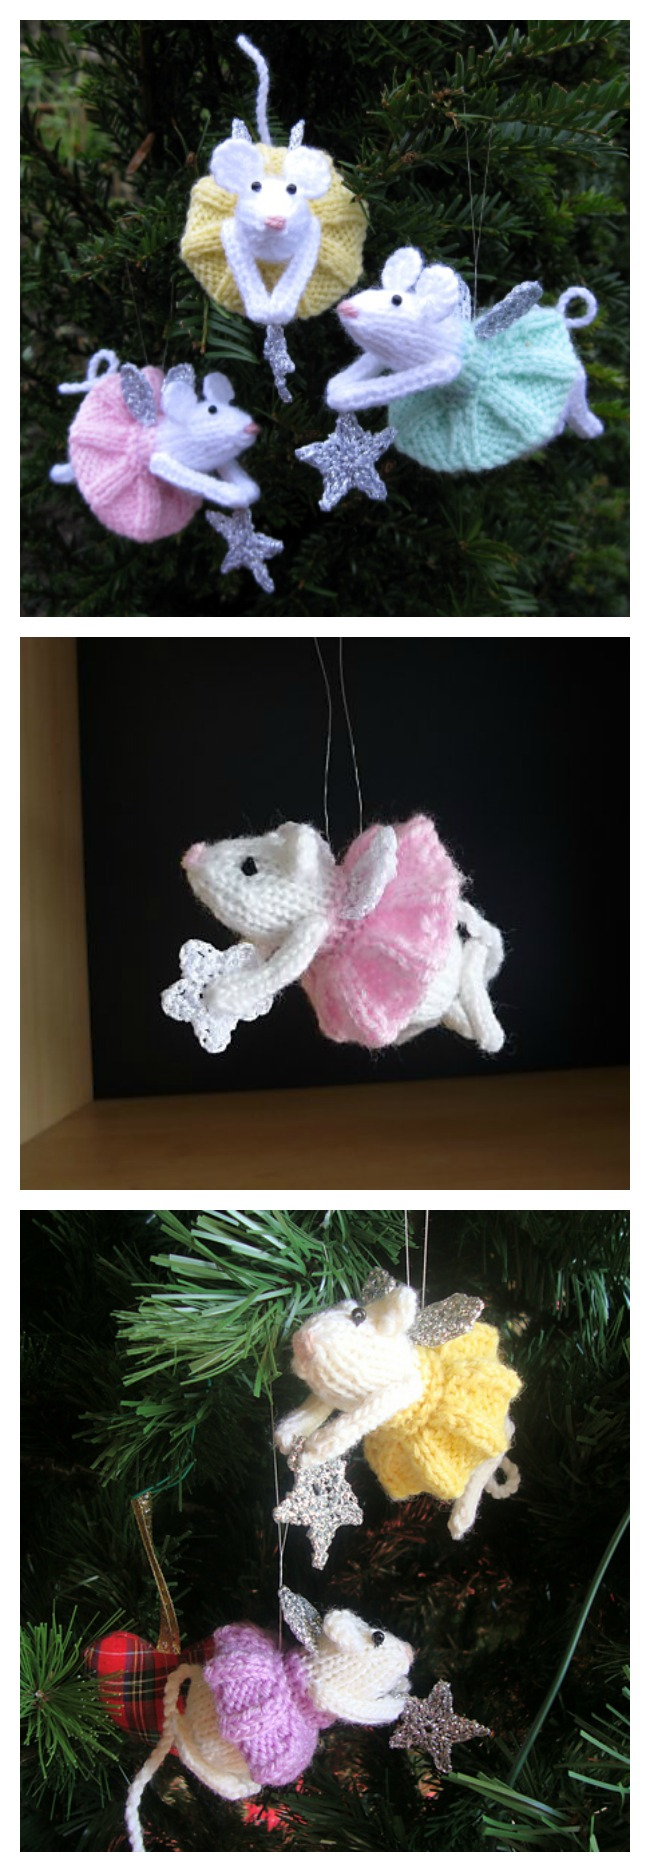 Free Furry Fairies Christmas Ornament Knitting Patterns - Cool ...